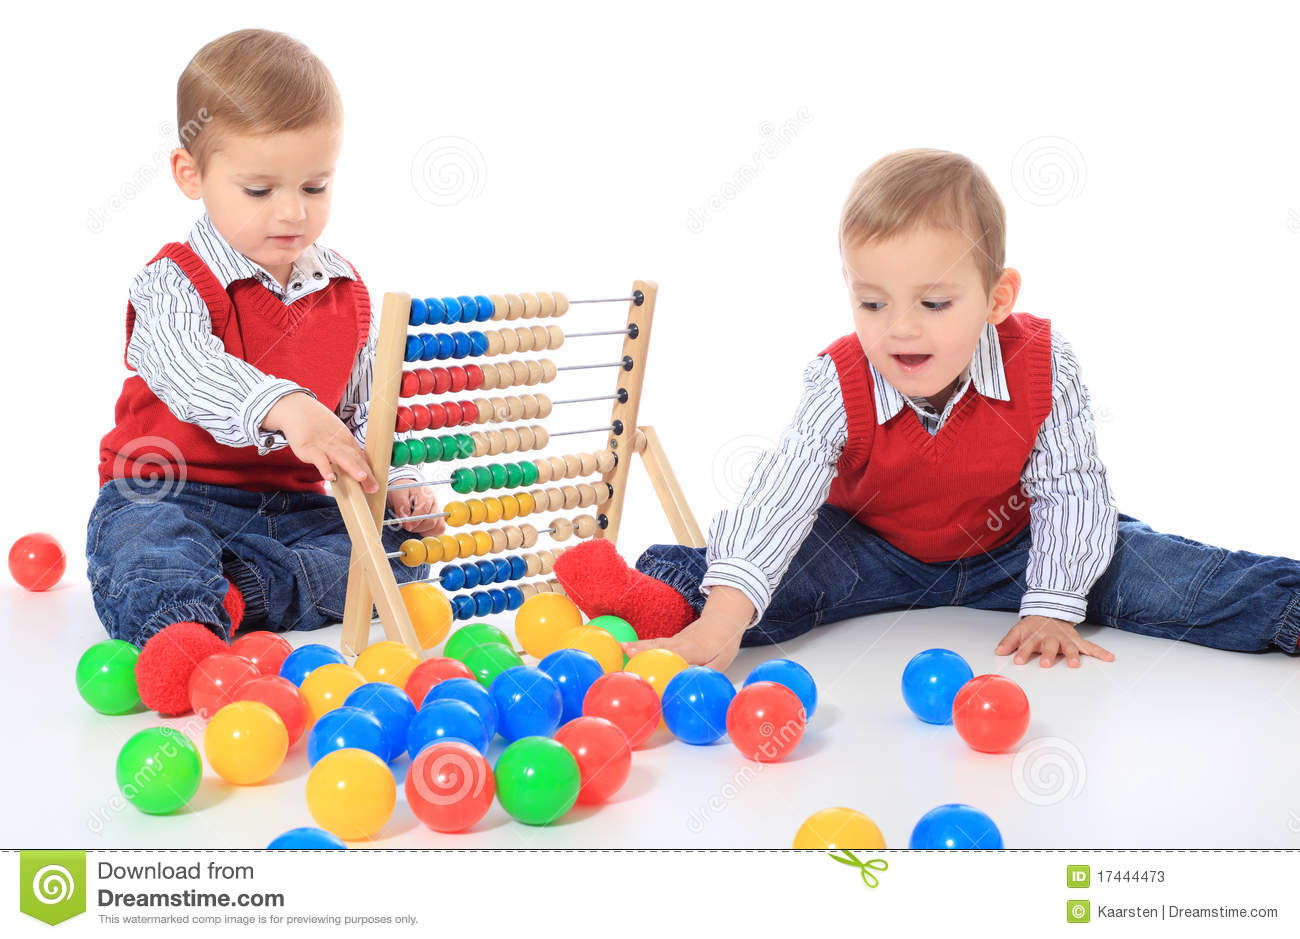 Little Boys Toys Border : Two cute little boys playing with toys stock image